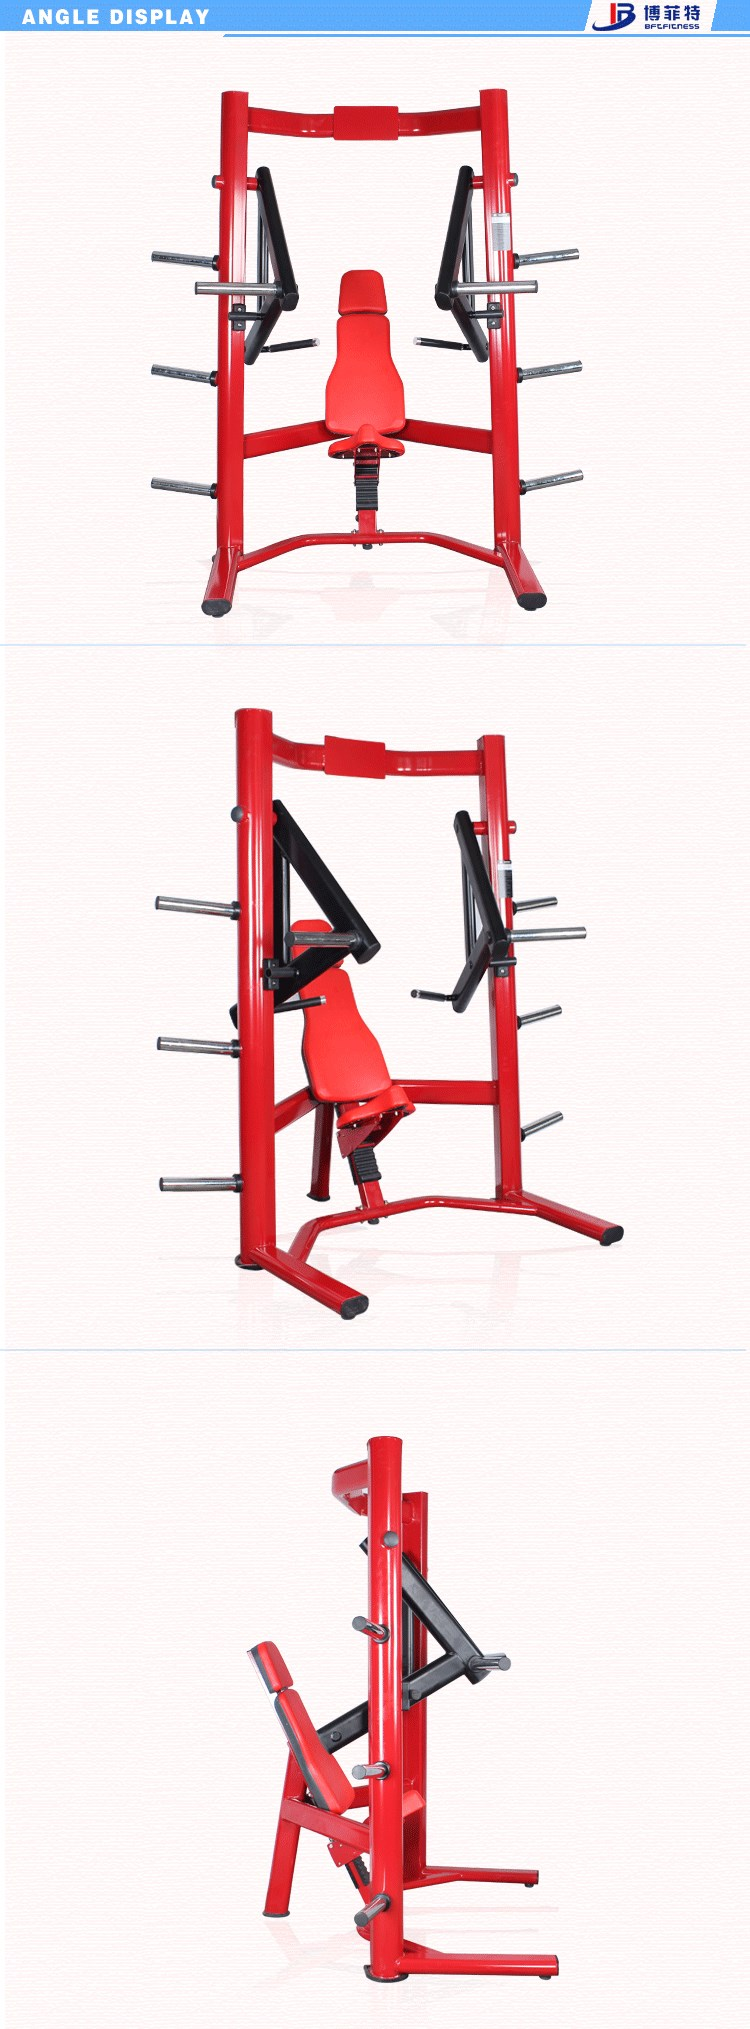 BFT-5009 Gym Equipment Dubai,Hammer Strength Dimensions